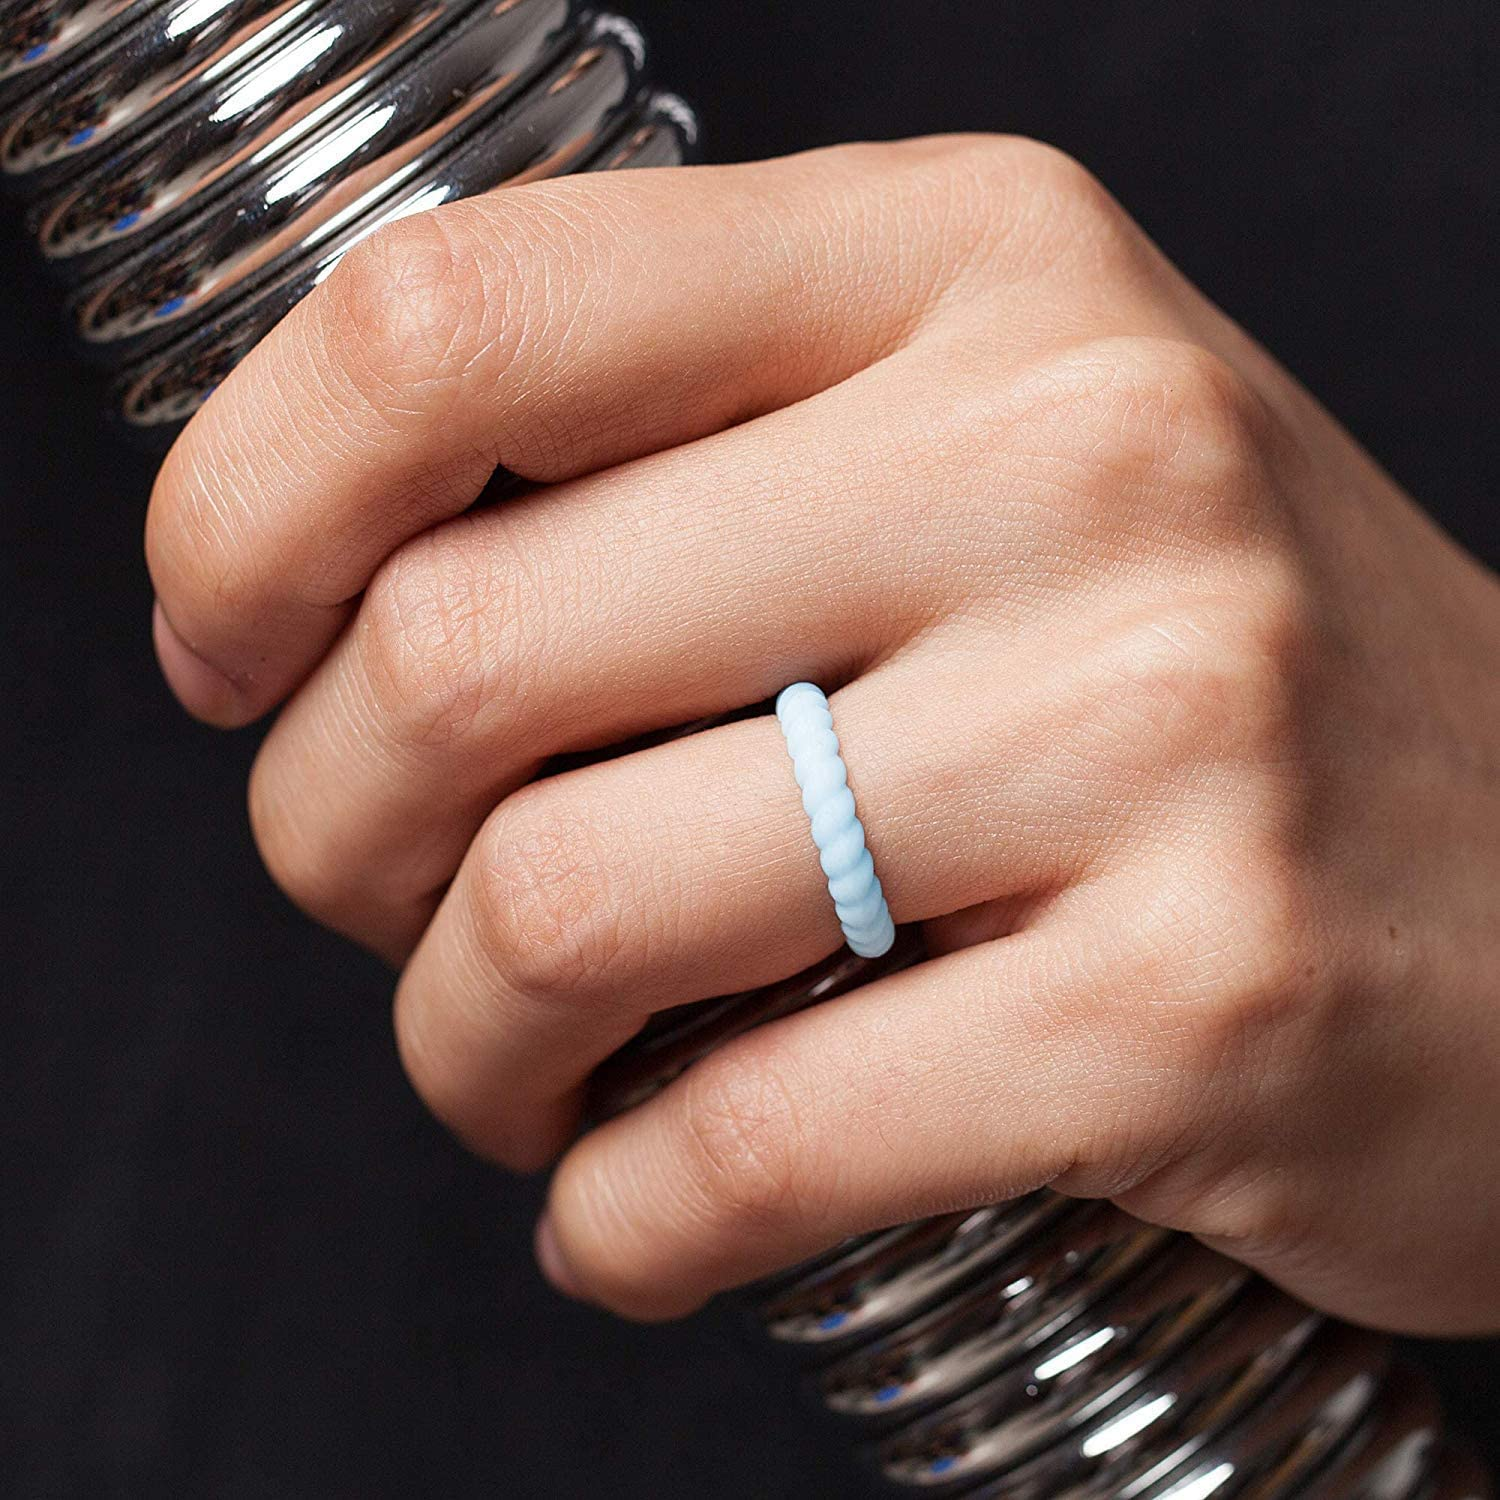 2mm Thick 10 Rings // 8 Rings // 4 Rings // 1 Ring Stackable Silicone Wedding Rings ThunderFit Womens Thin Swivel Rings 2.5mm Wide